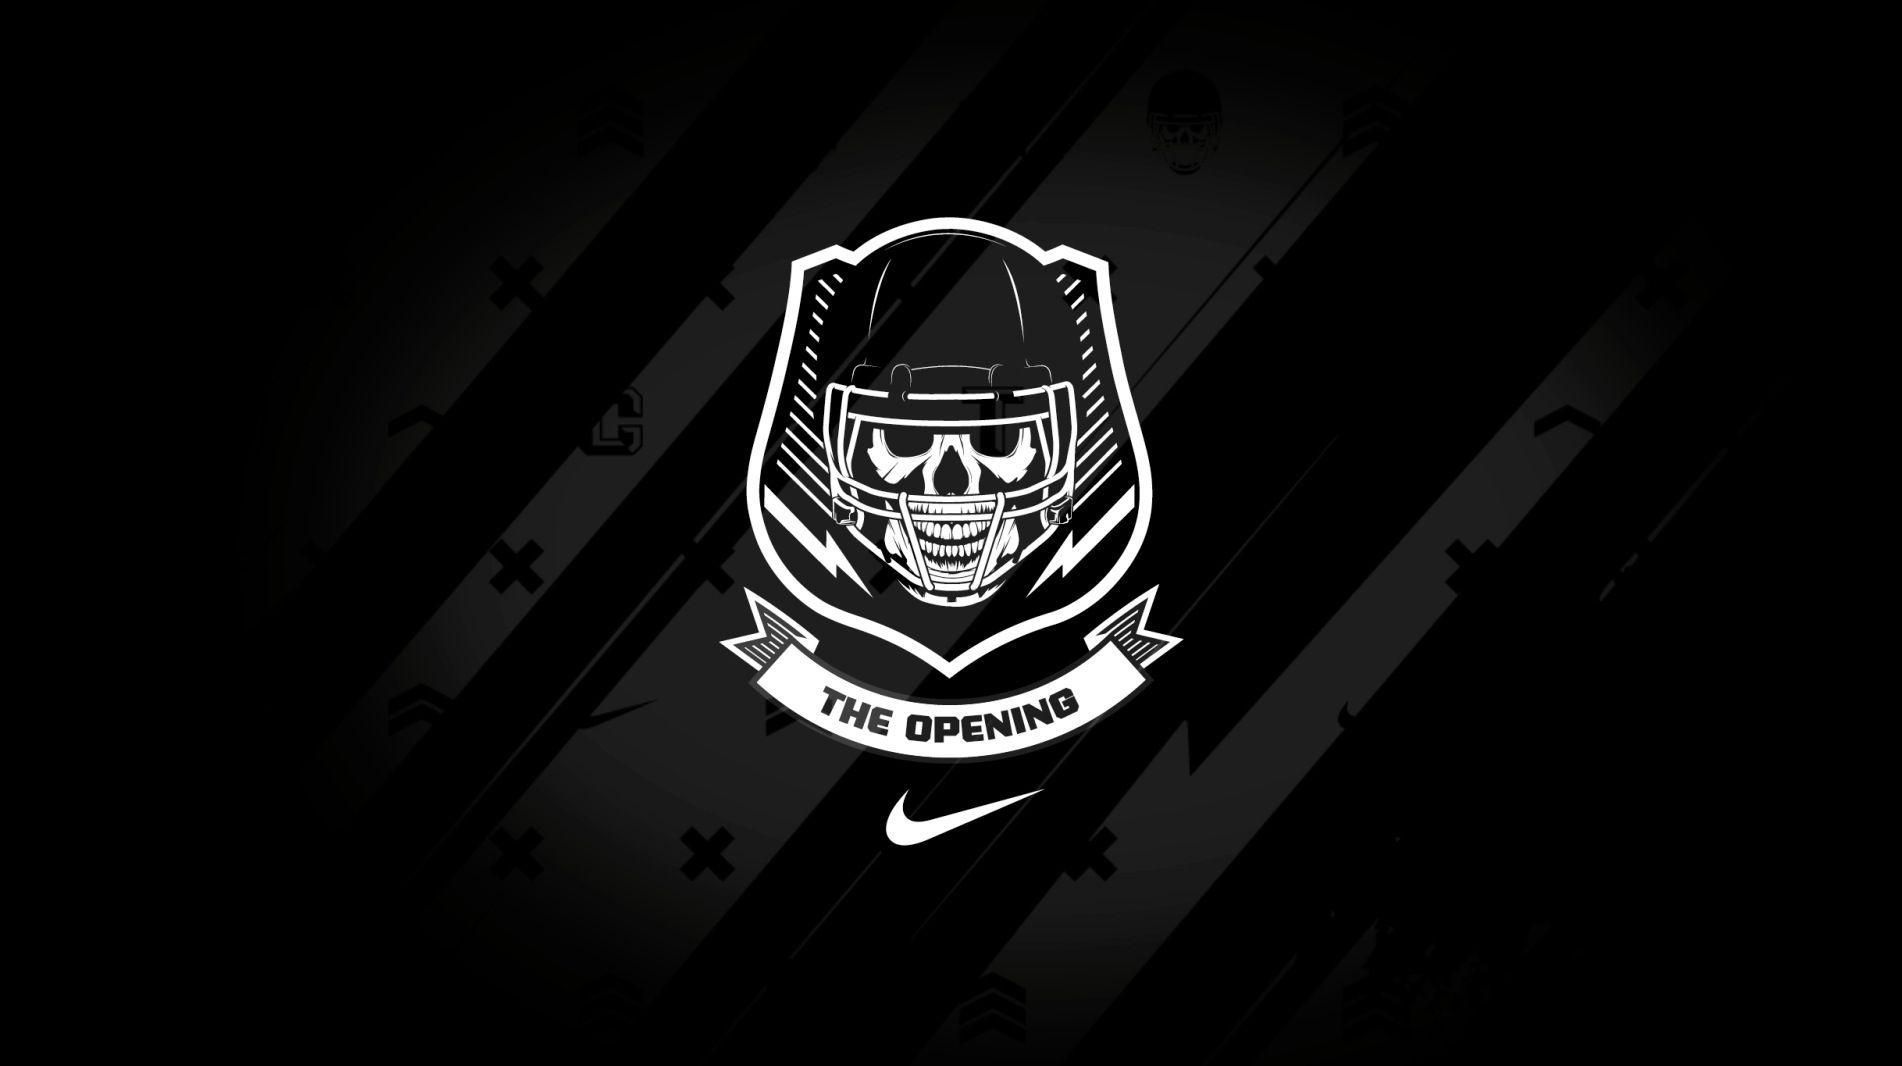 nike football wallpapers 2016 - wallpaper cave